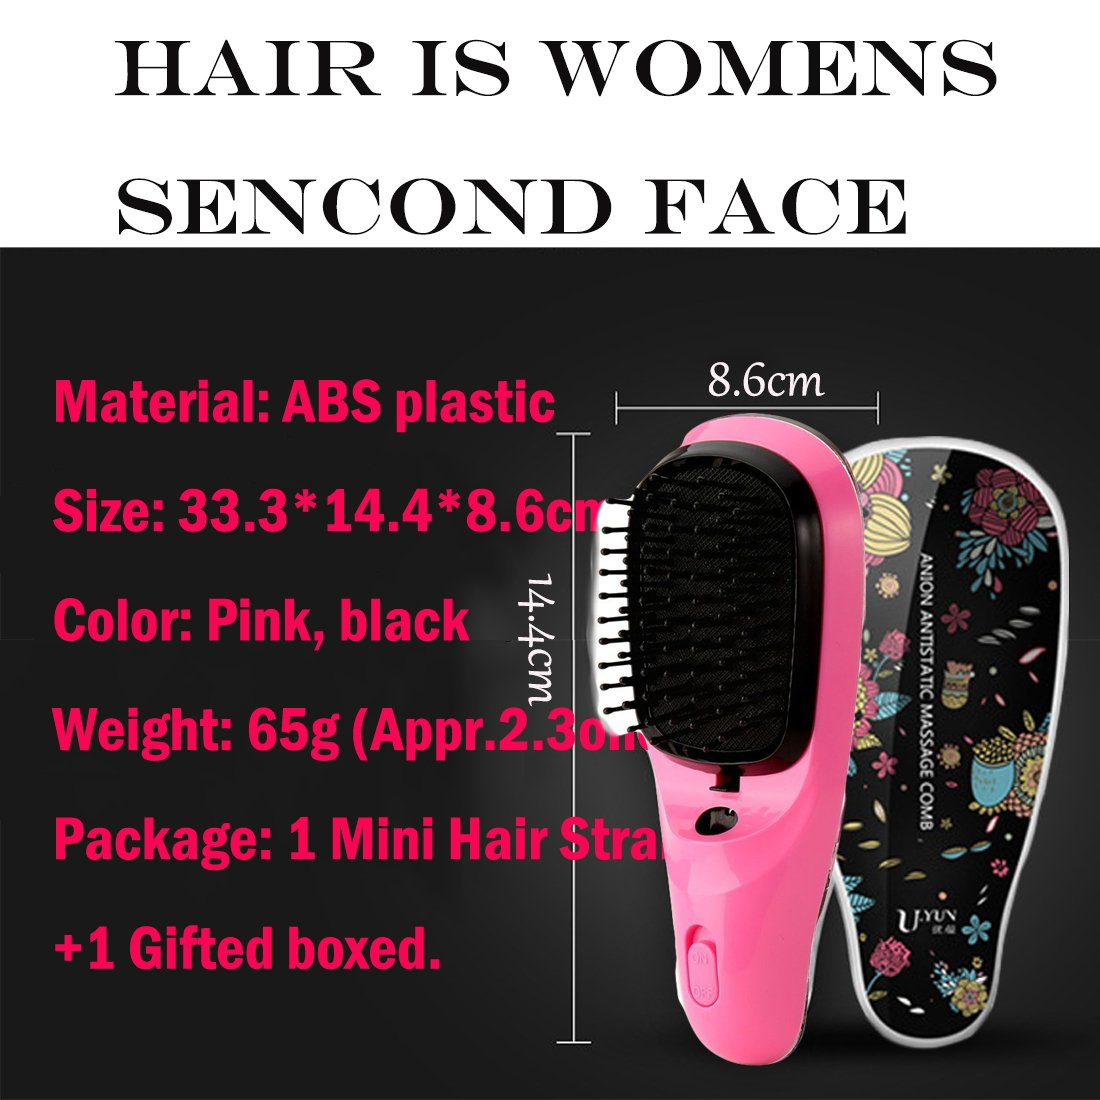 Lookathot Mini Portable Hair Straightener Brush Detangling USB Rechargeable Hair Styling Comb Anion Hair Massager Travel Light Weight (Black) by Lookathot (Image #2)